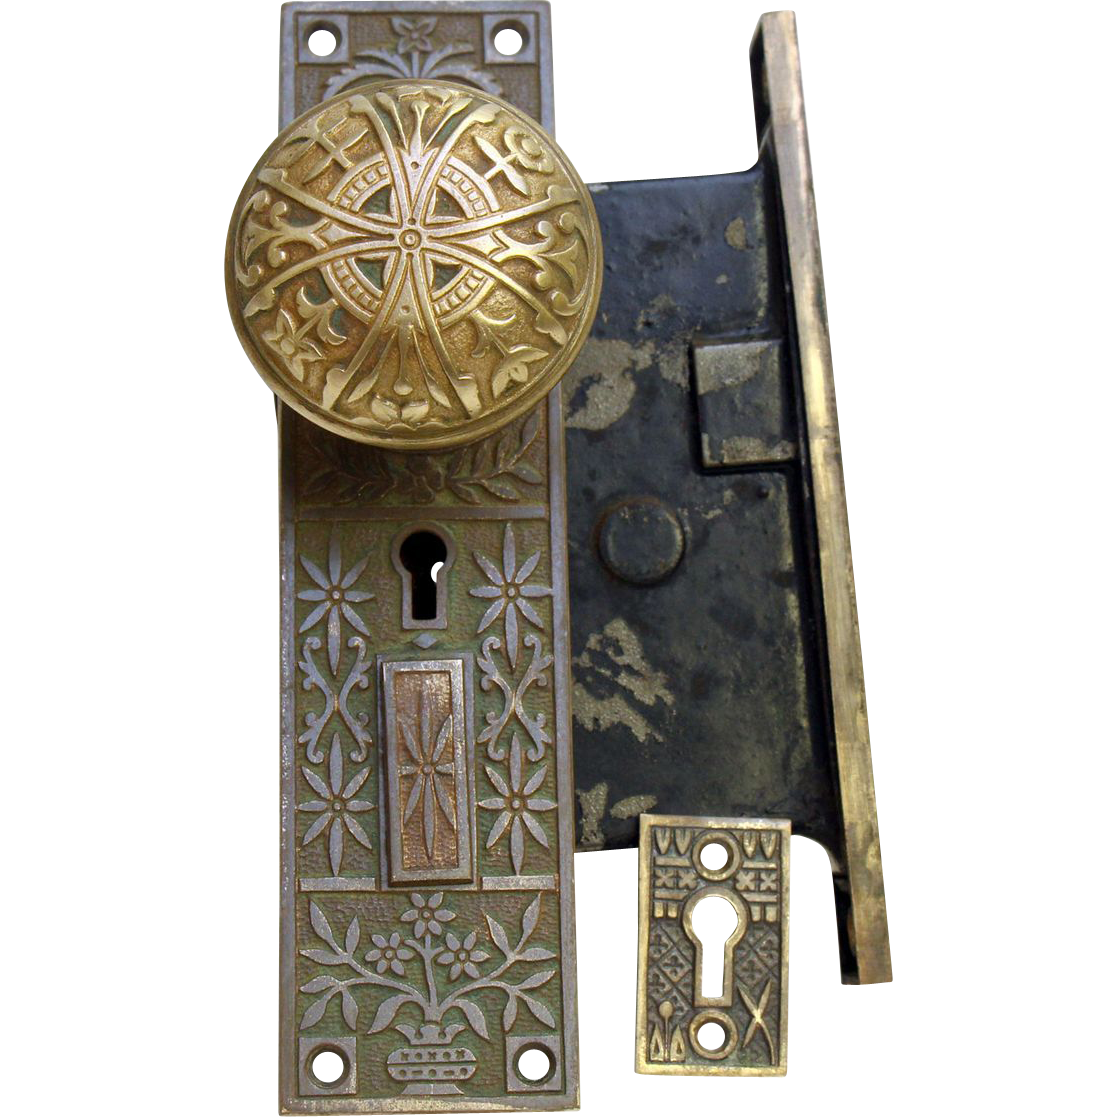 Aesthetic entry knob and lock set